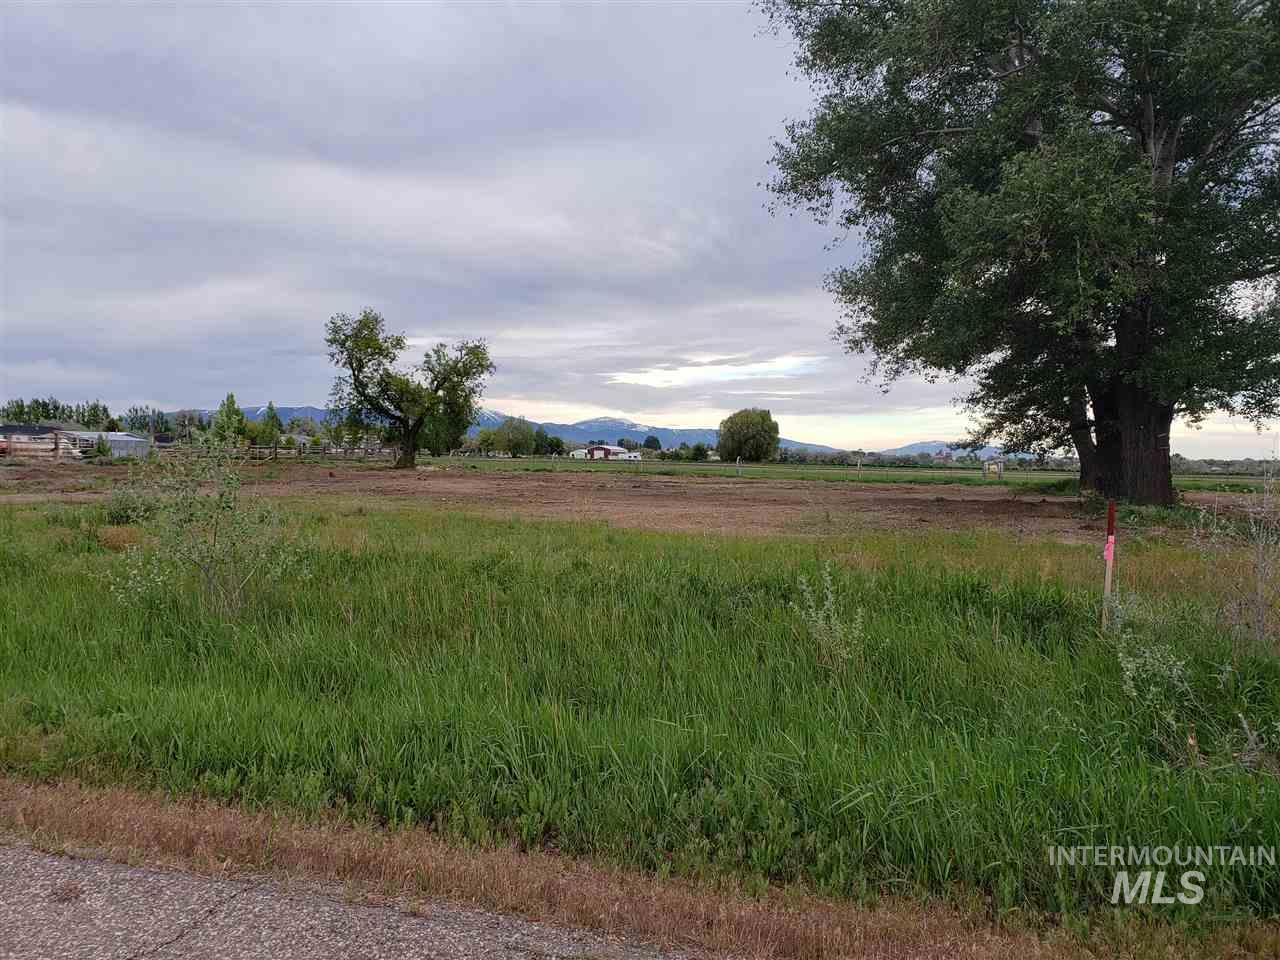 811 W 500 S, Heyburn, Idaho 83336, Land For Sale, Price $45,000, 98731572